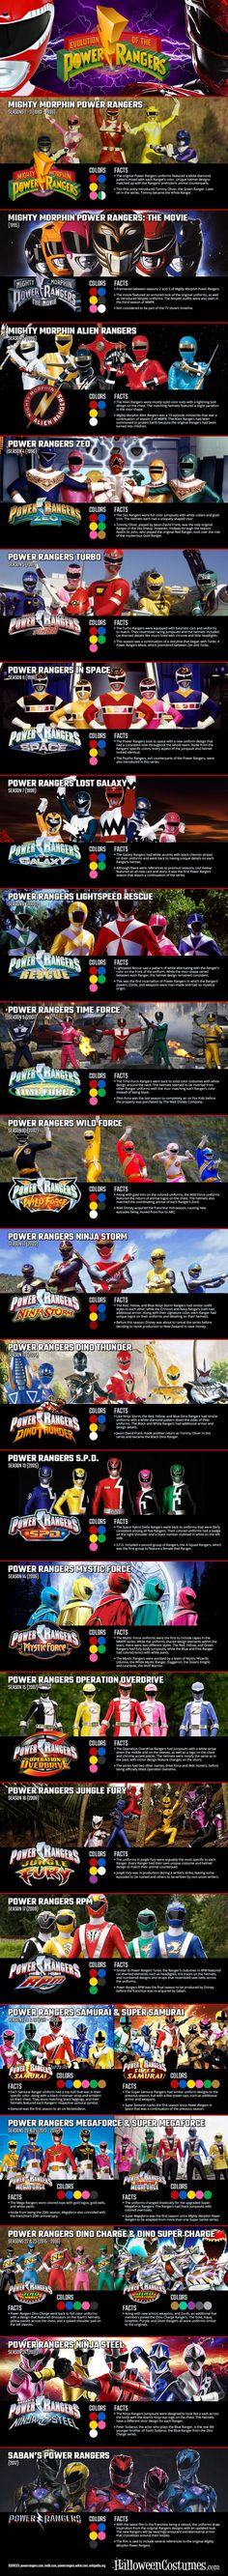 Power Rangers Evolution Infographic